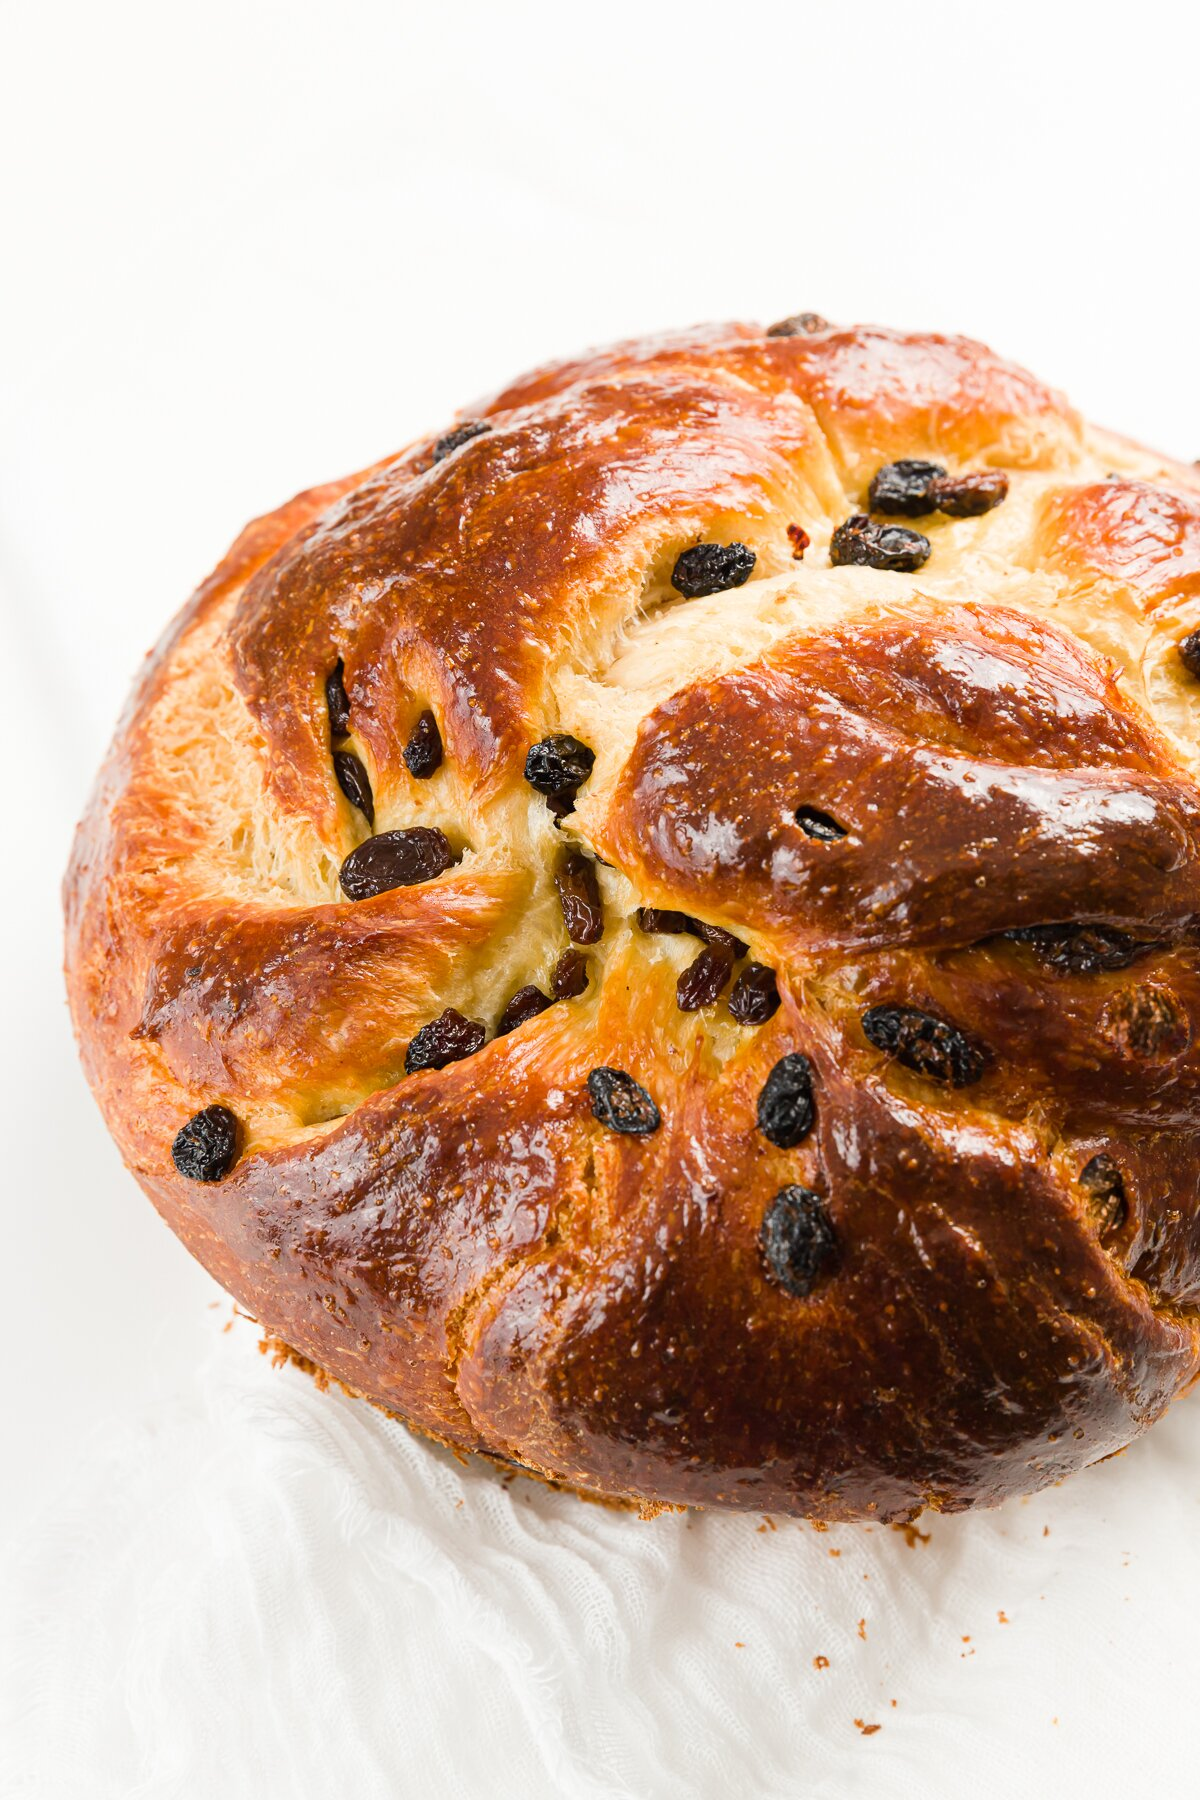 Round challah loaf with raisins on a white countertop